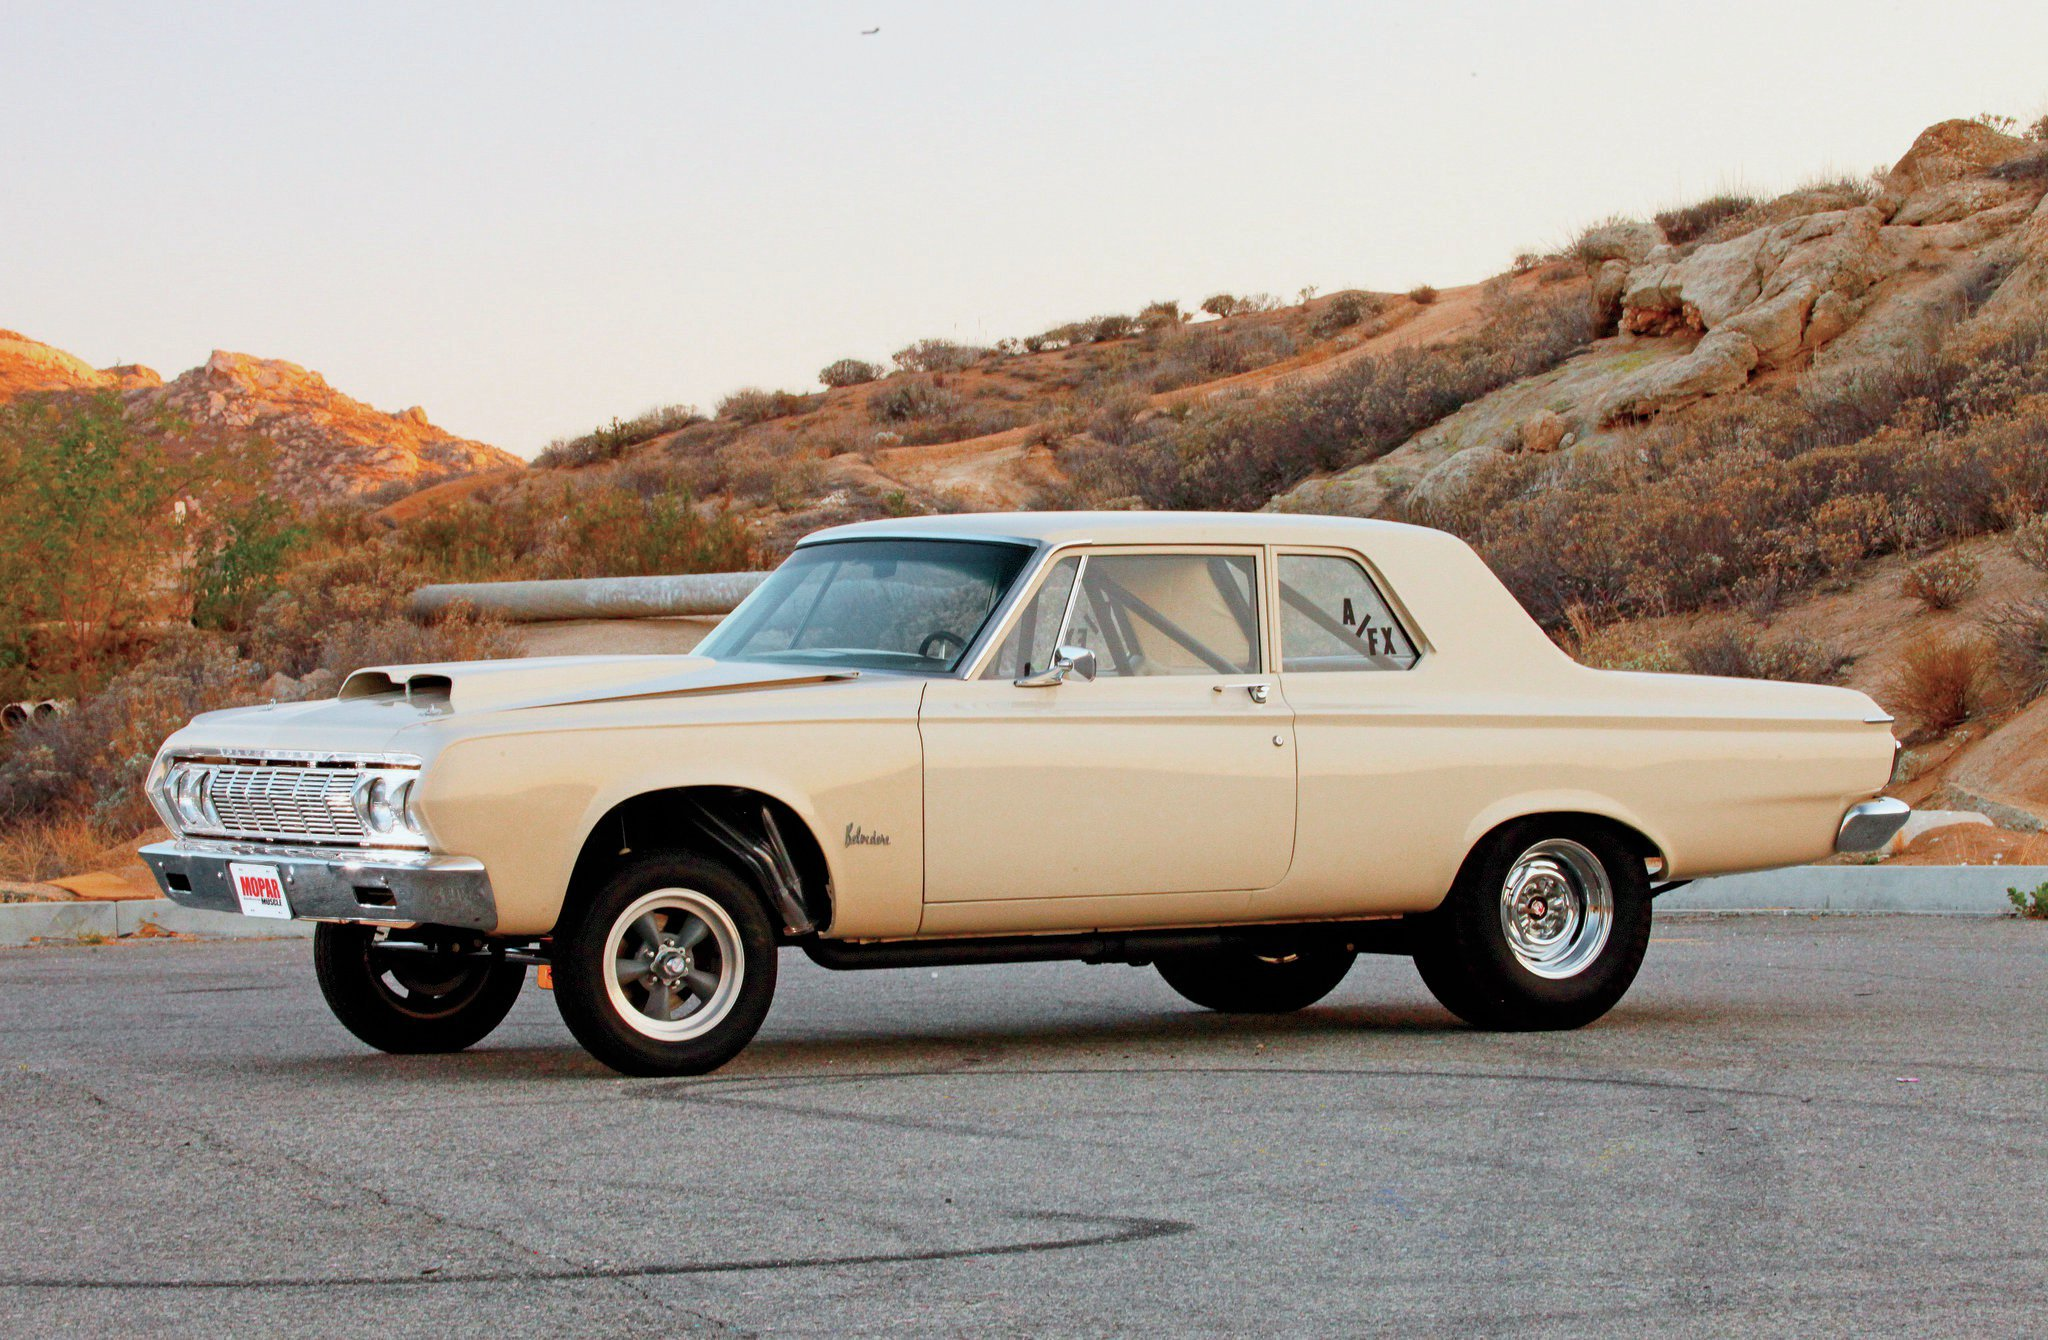 1964 Plymouth Belvedere   Give  Em An Inch      Hot Rod Network 1964 Plymouth Belvedere Driver Side